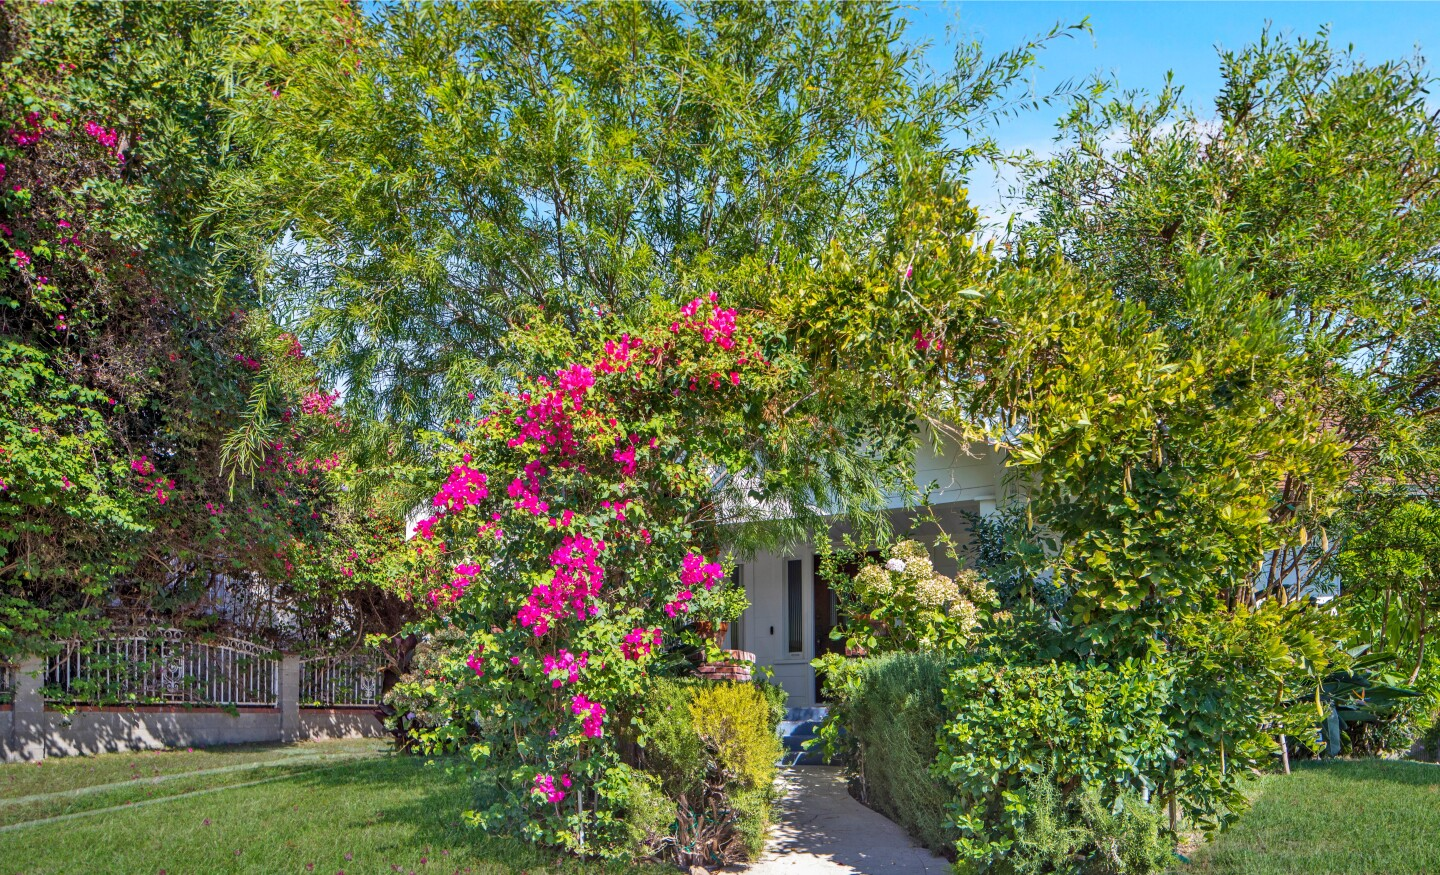 The miniature compound includes a century-old Craftsman, a detached guesthouse and a whimsical backyard with secluded nooks and fruit trees.